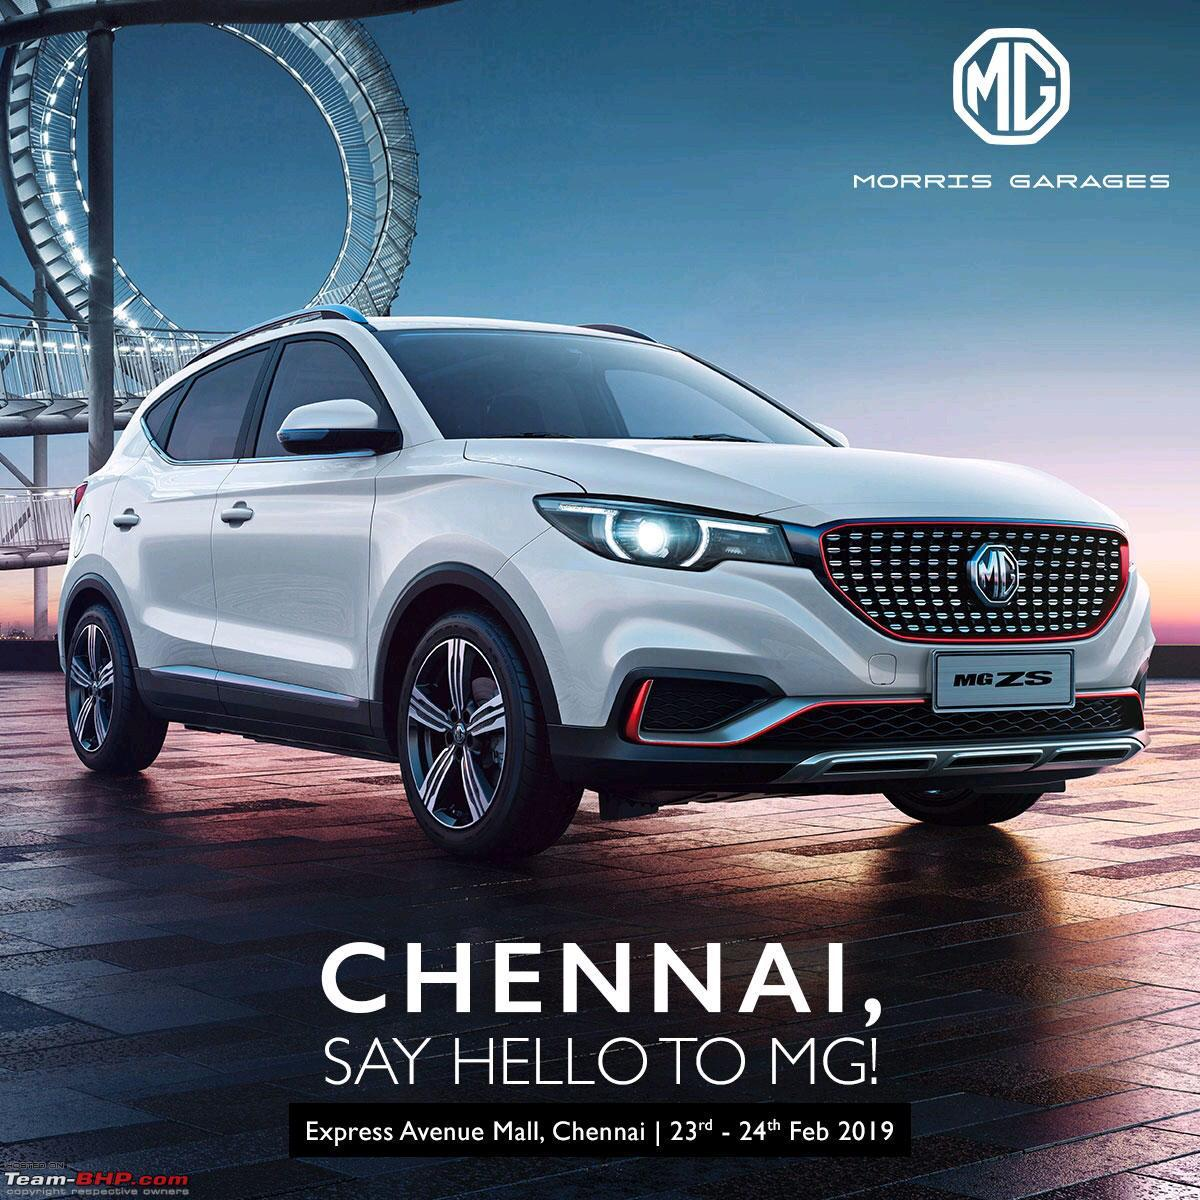 Chinese Owned Mg Morris Garages Debuts In Indian Auto Market In